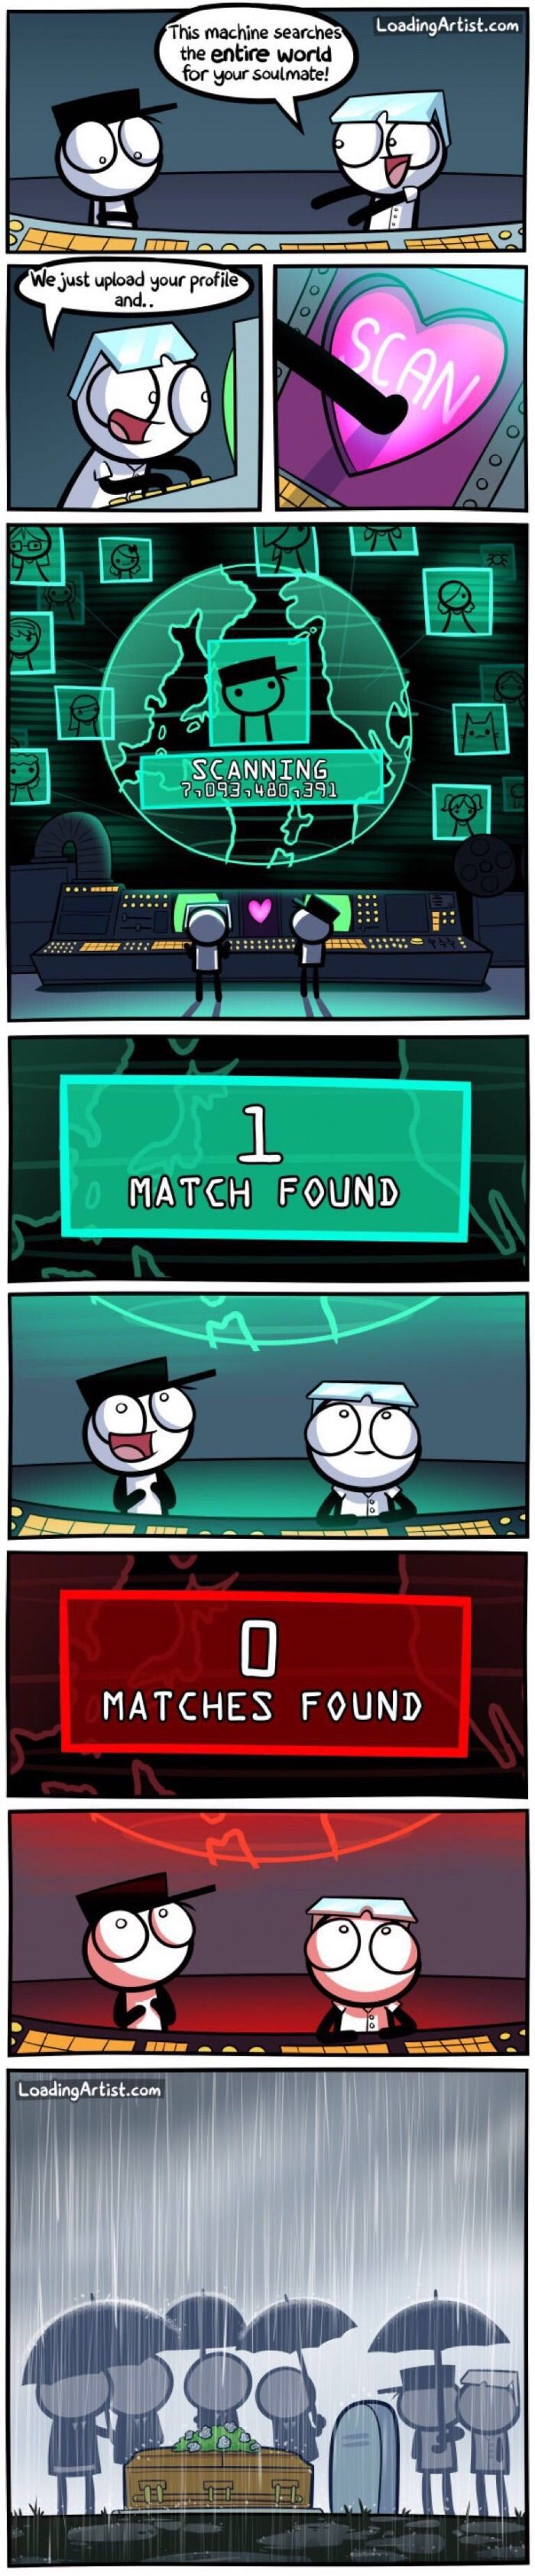 Finding your soulmate like